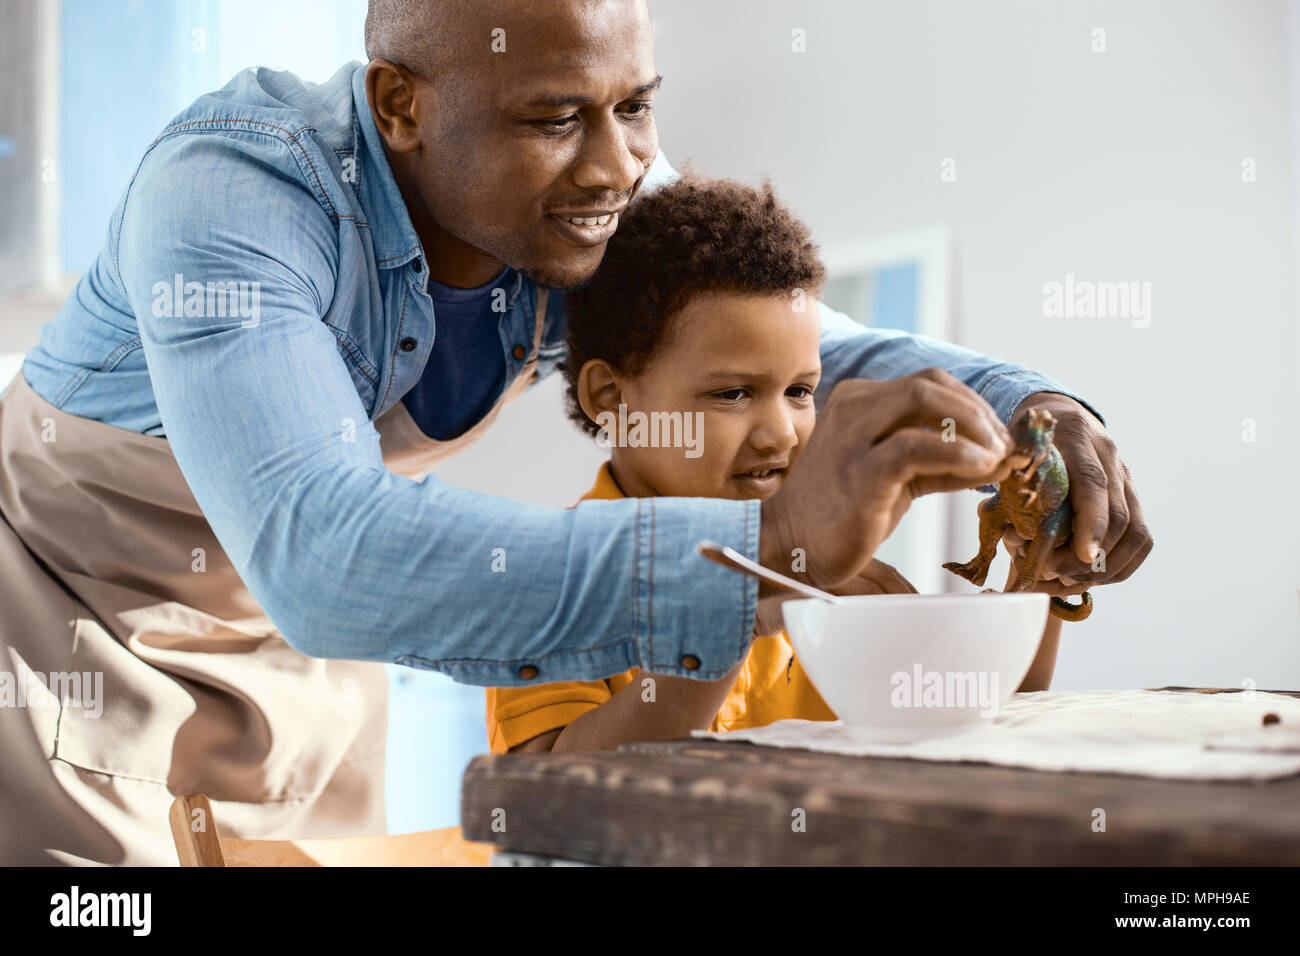 Caring father feeding cereals to his sons toy dinosaur Stock Photo